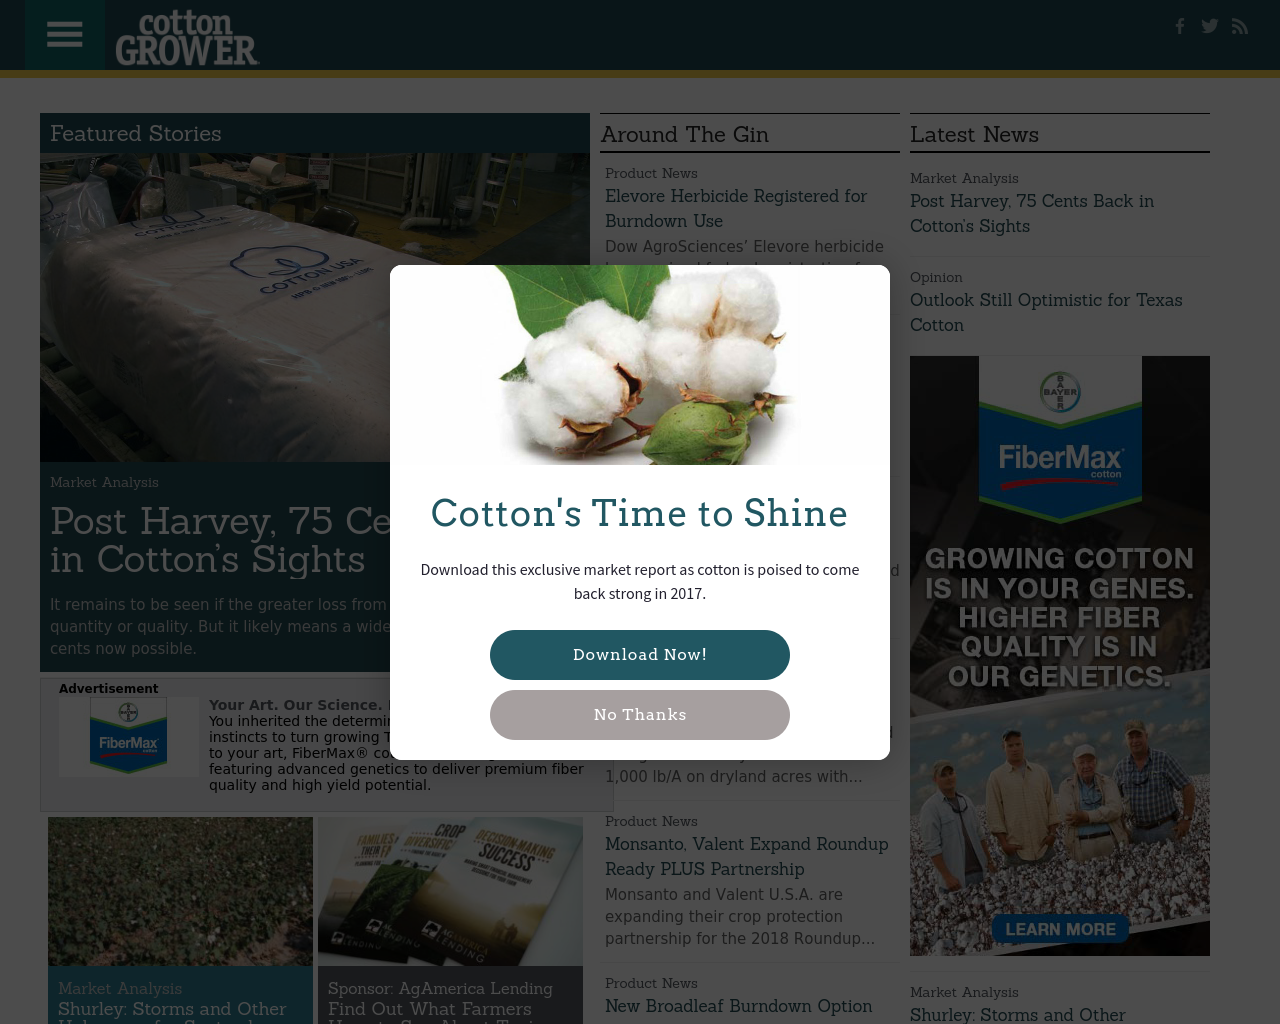 Cotton-Grower-Advertising-Reviews-Pricing